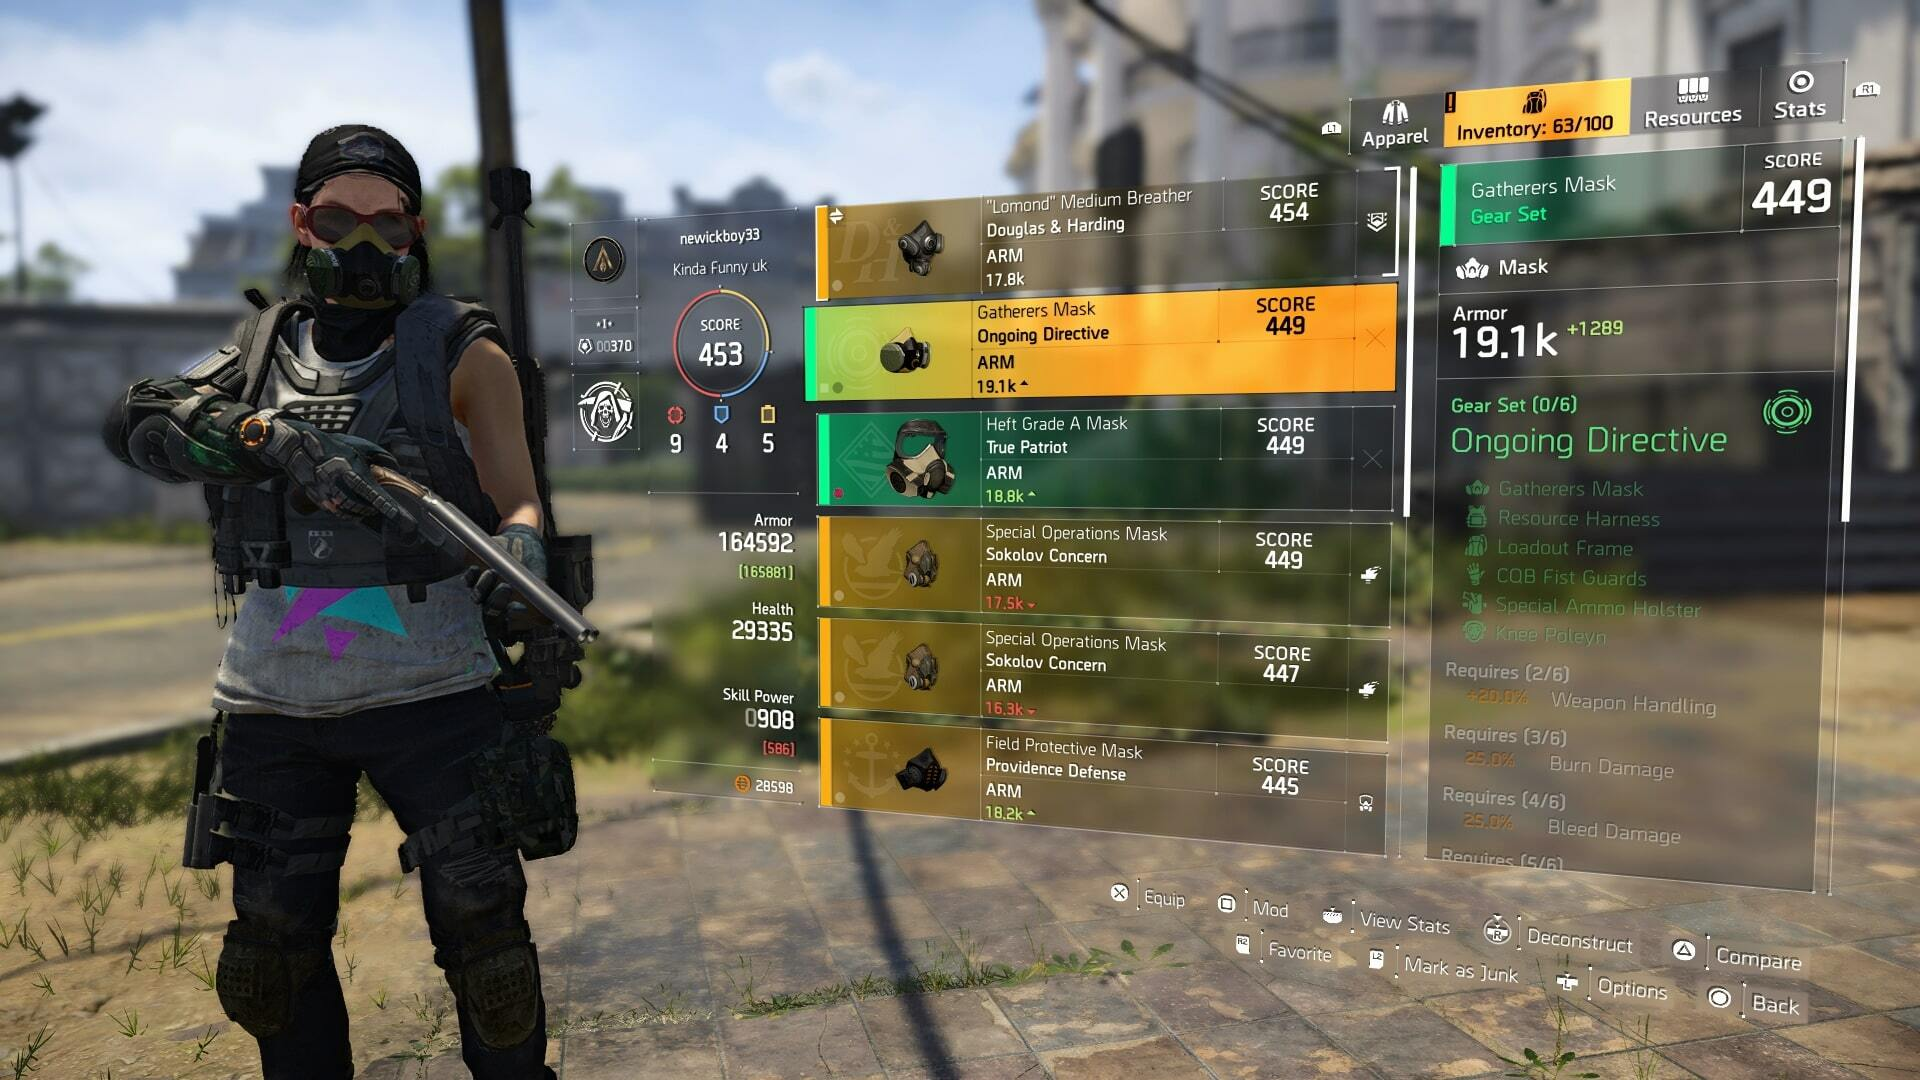 The Division 2 Hard Wired - Hard Wired Tech, Hard Wired Gear Set, True Patriot Stats